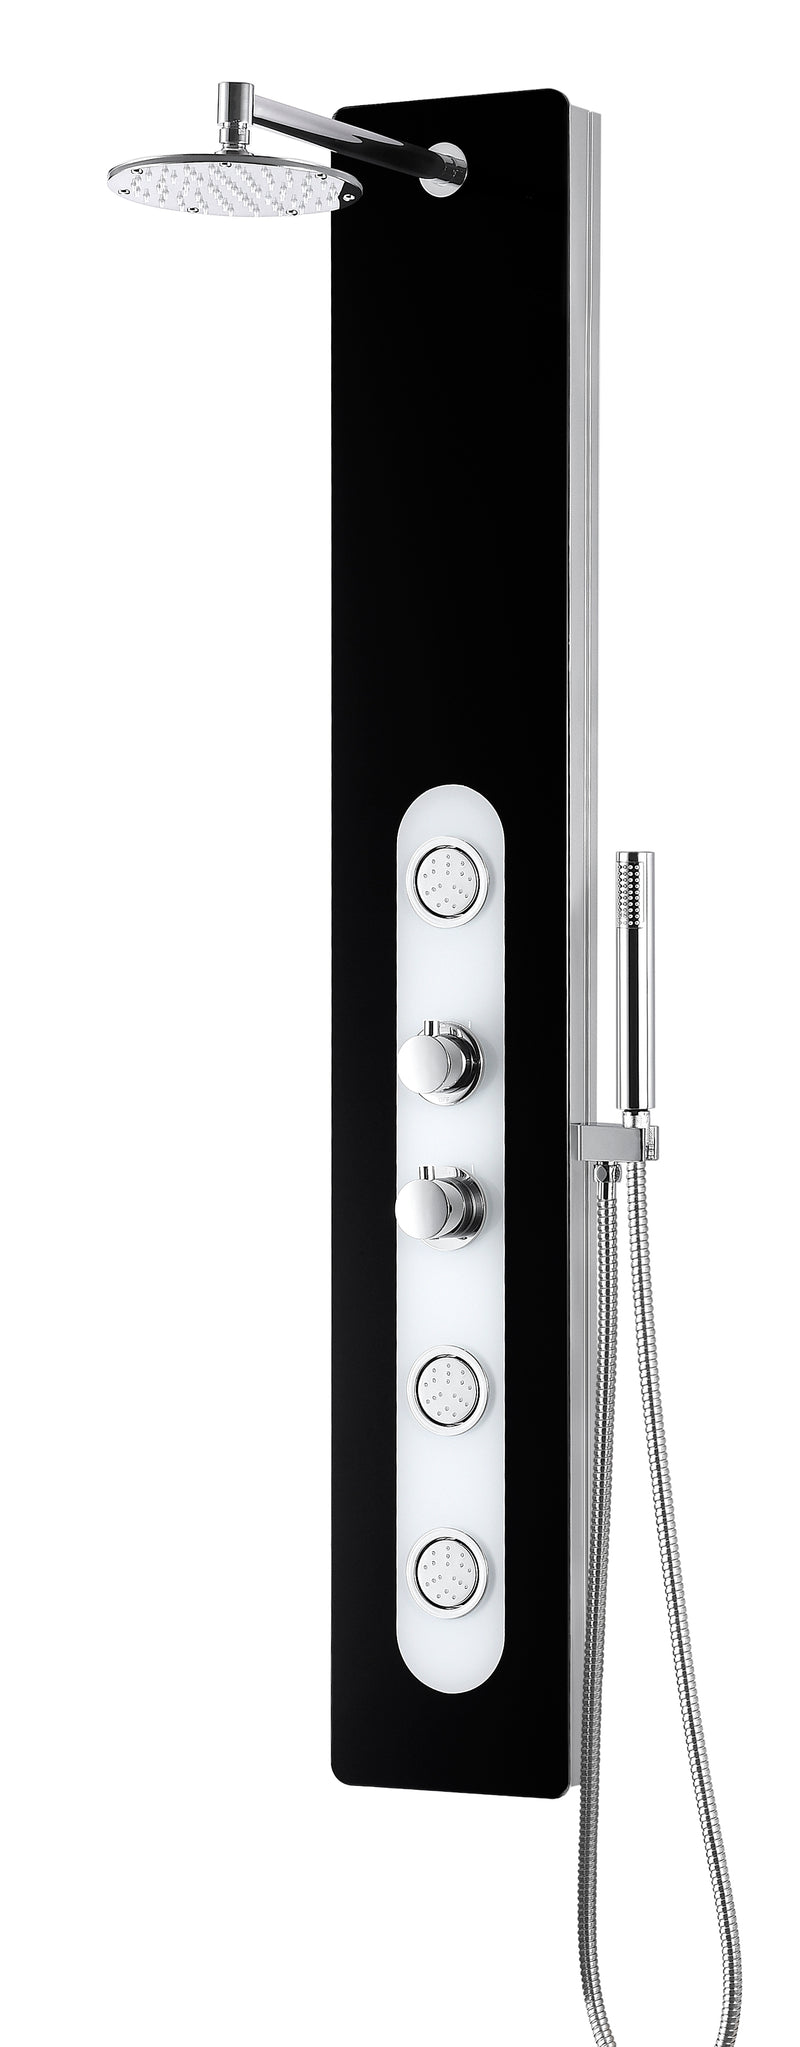 "Anzzi Lande Series 56"" Full Body Shower Panel System with Heavy Rain Shower and Spray Wand in Black"